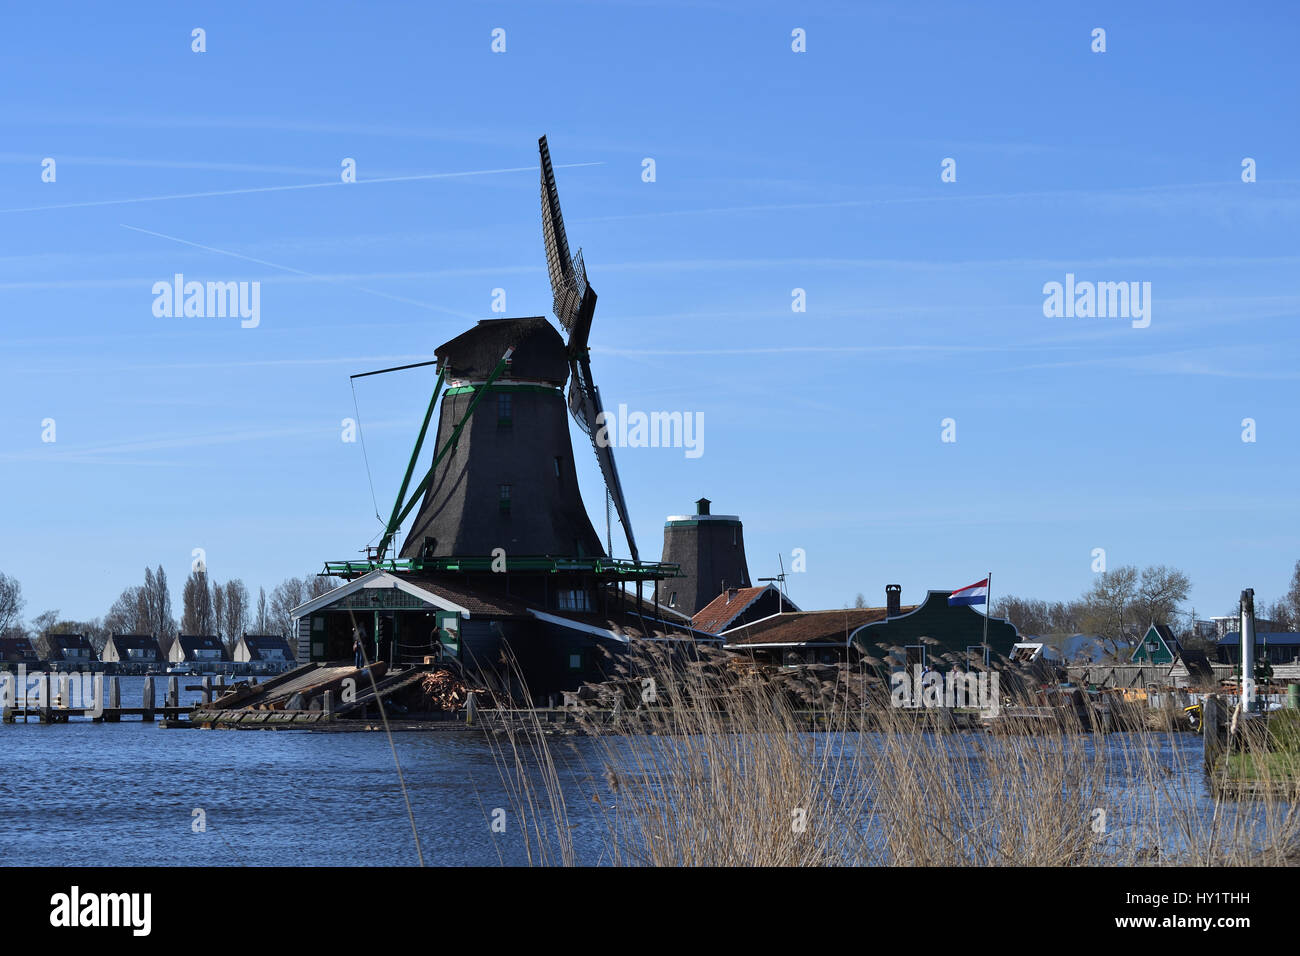 Old style windmill in Dutch countryside on waterway - Stock Image